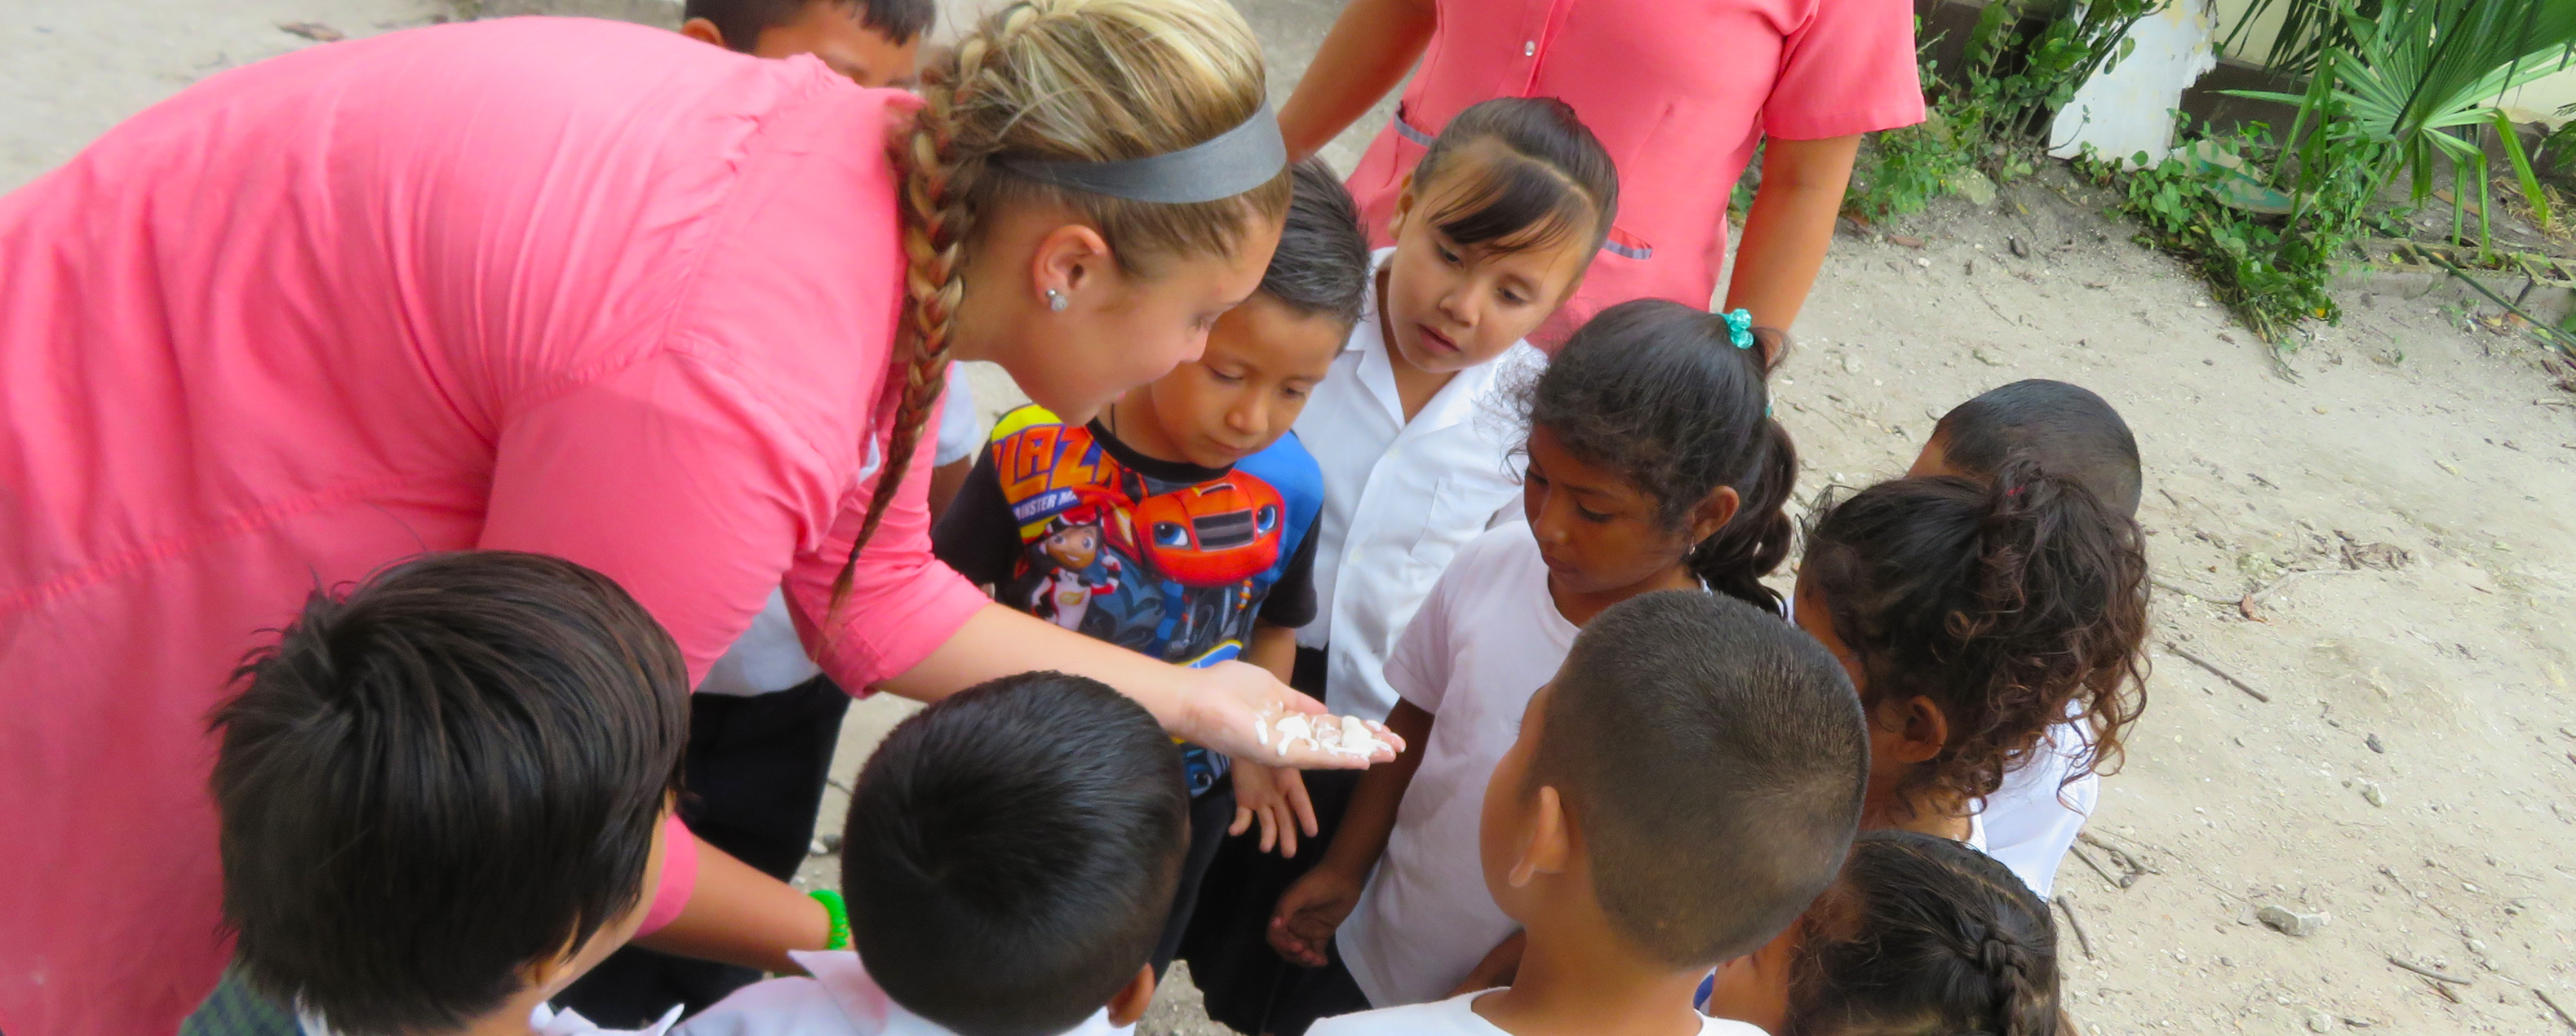 Blonde student surrounded by ten small children who are looking at a light colored substance on her palm which she is holding out.